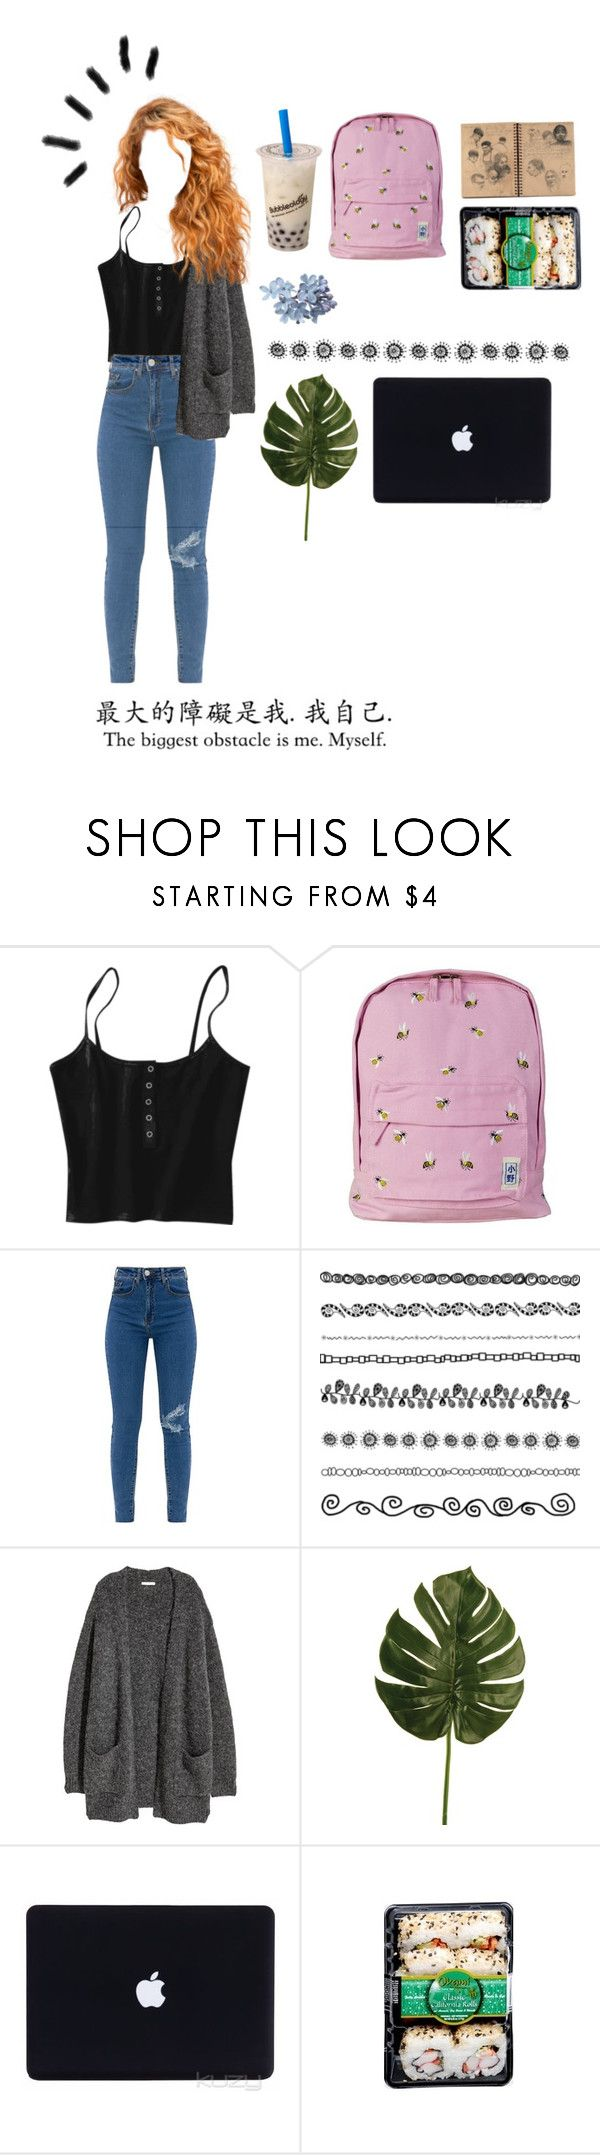 """""""I wish I was in collage"""" by the-chaos-and-the-calm ❤ liked on Polyvore featuring Kofta"""